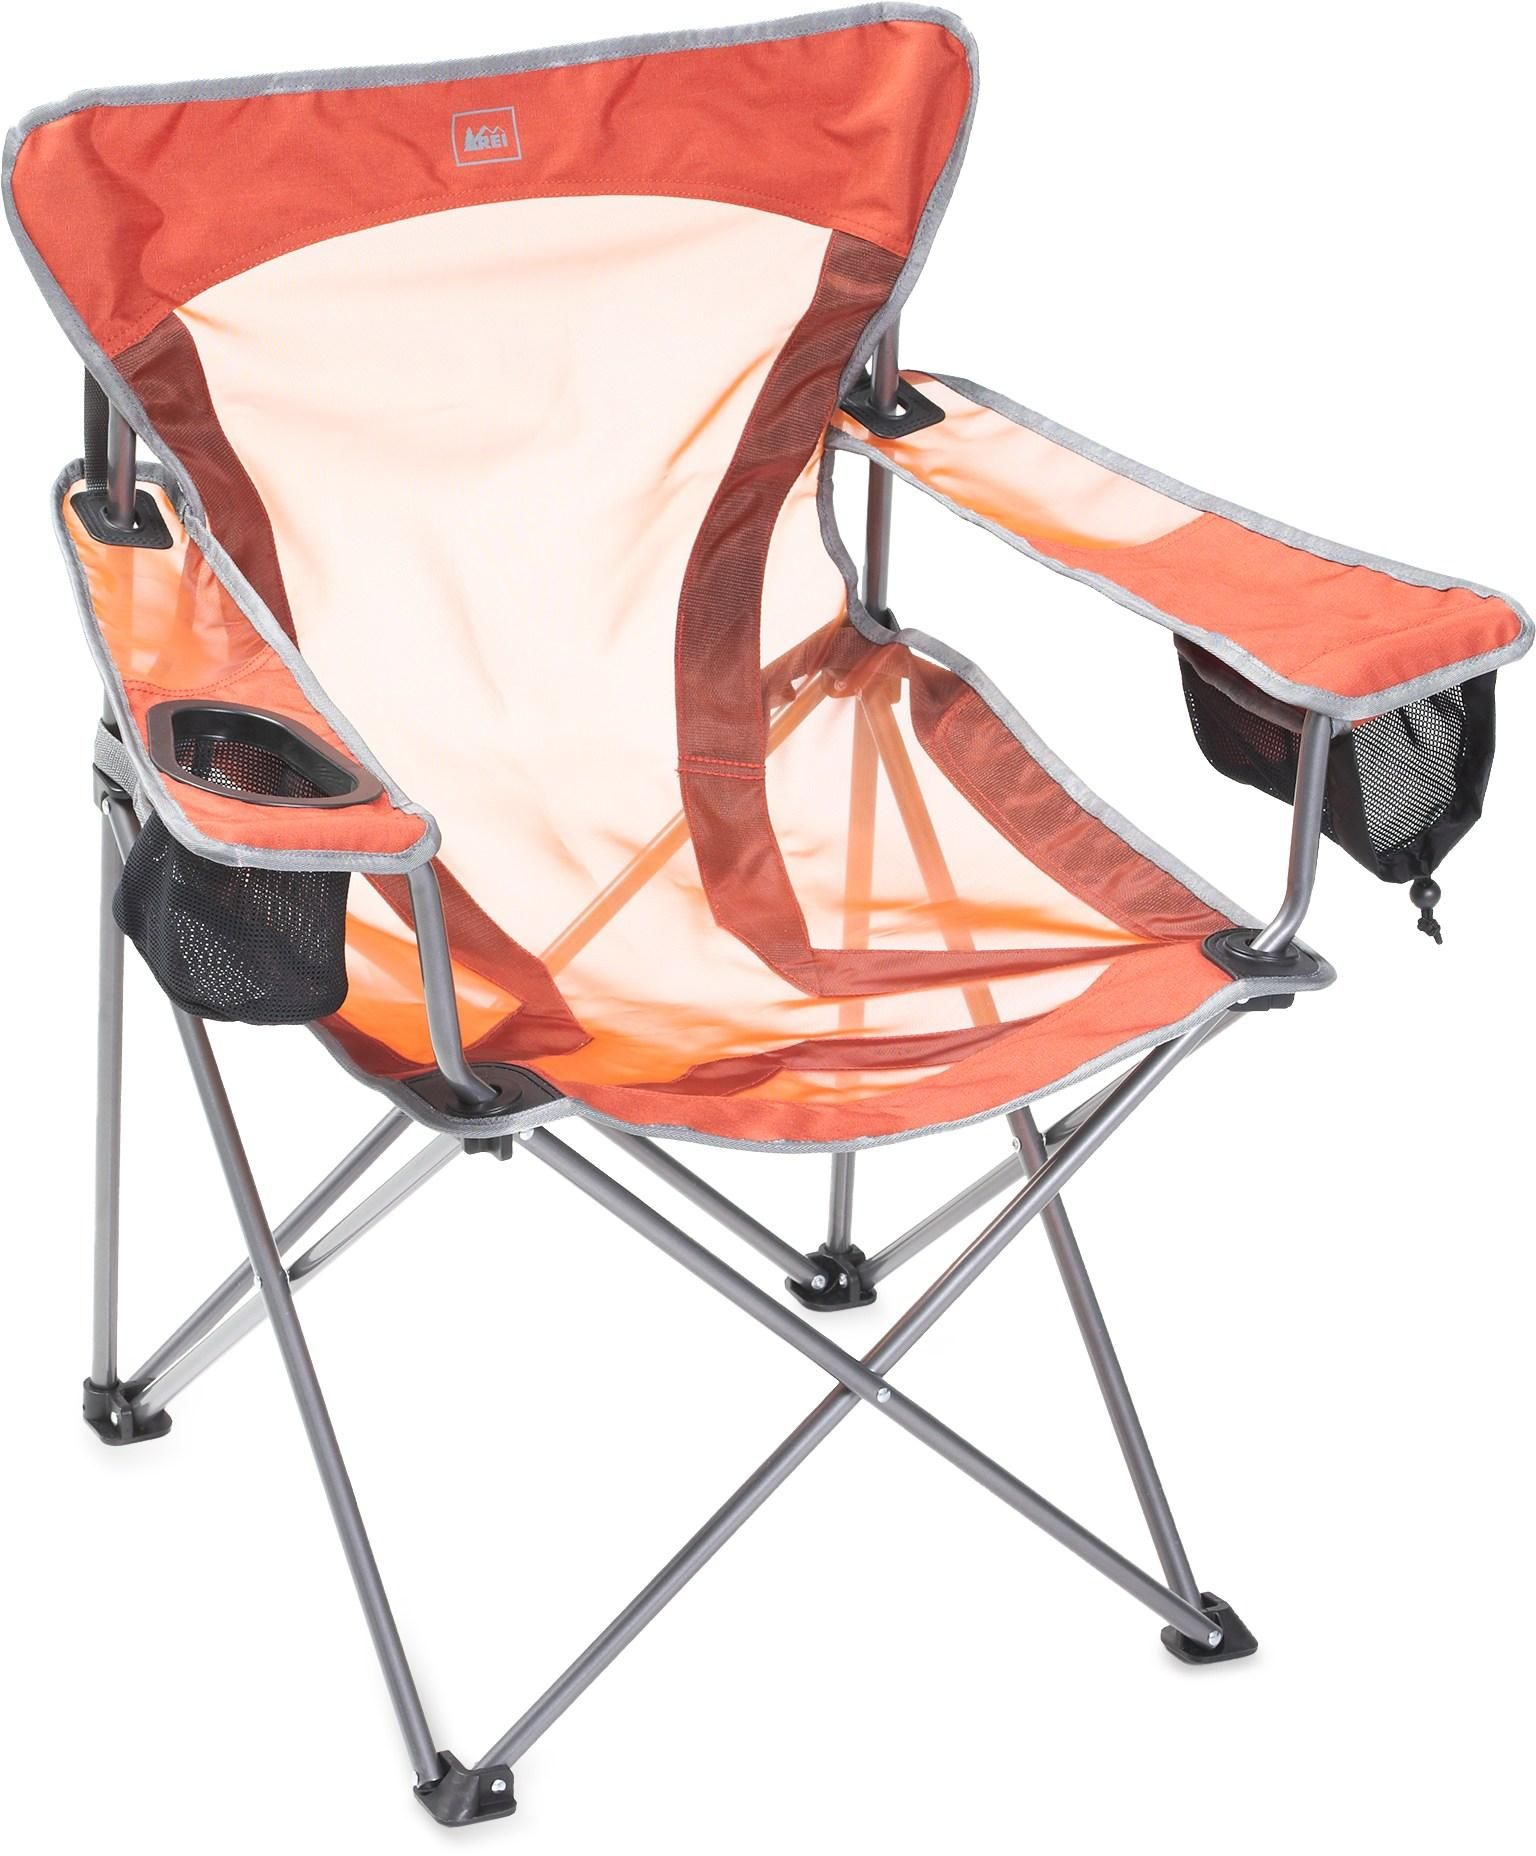 rei camp x chair cushions for outdoor chairs take a seat the is built to withstand